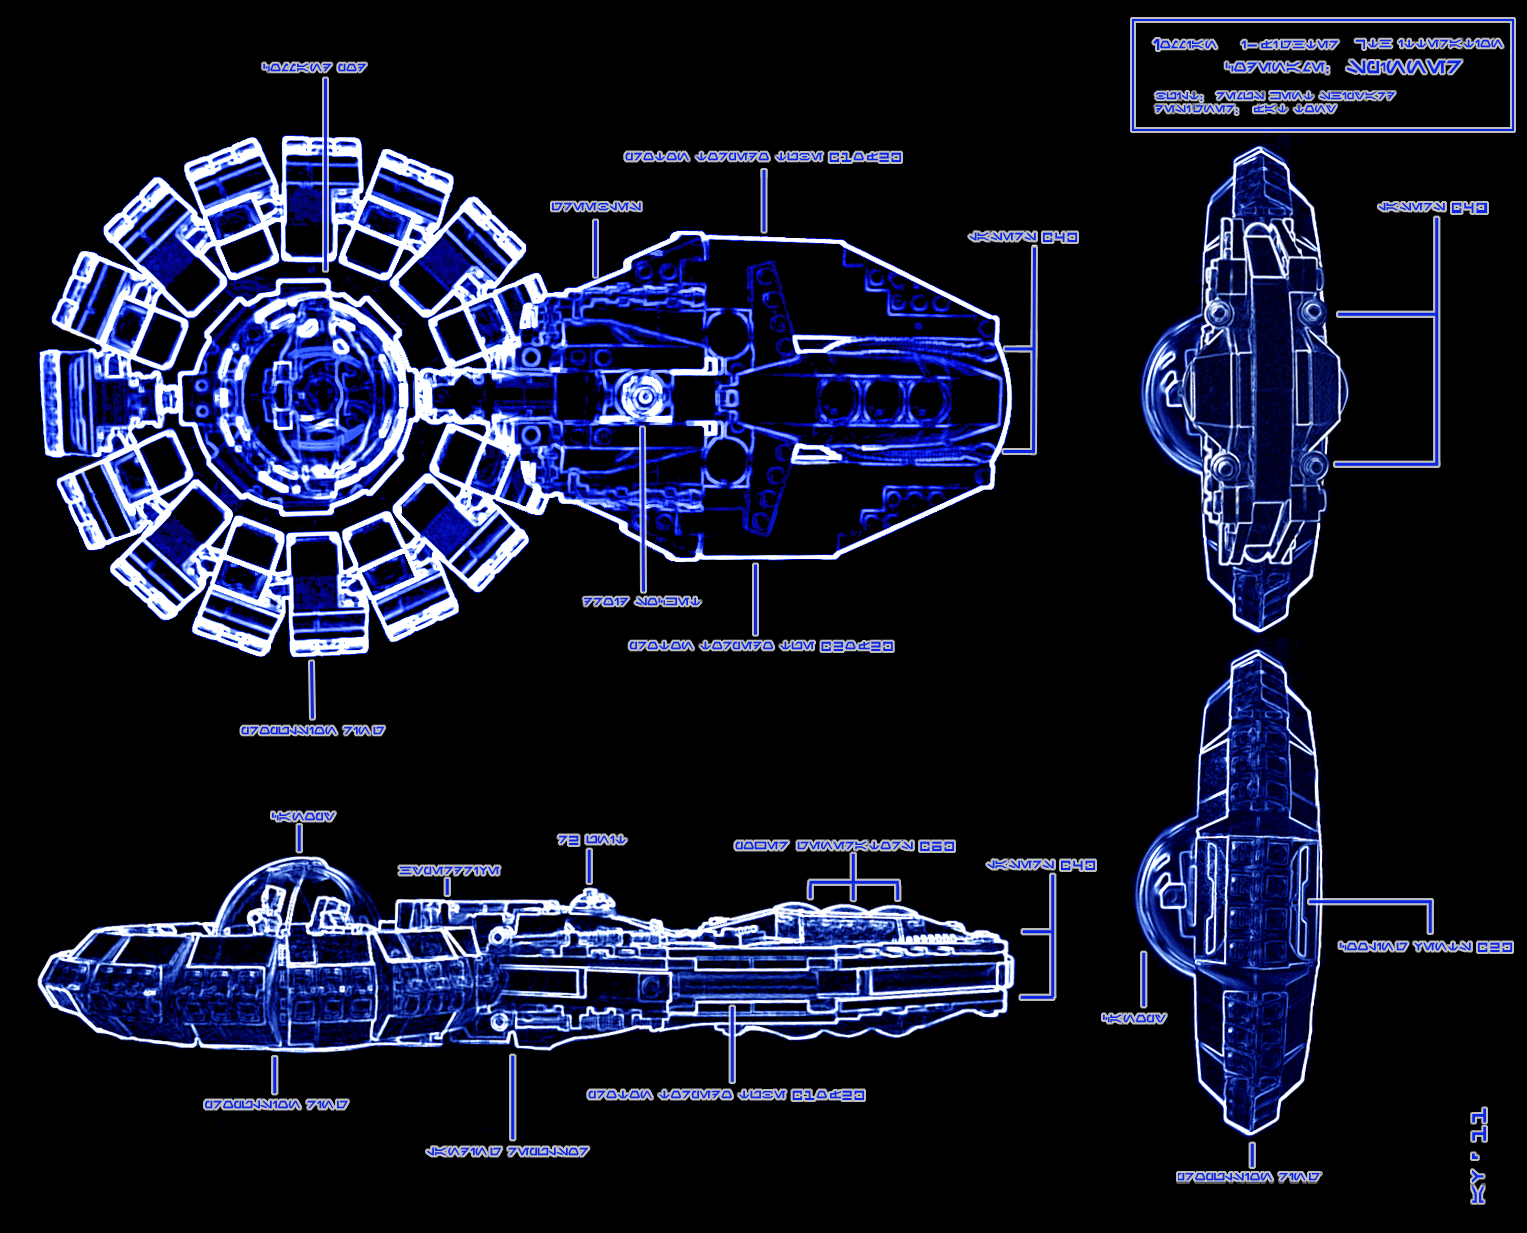 i-fighter-schematic.jpg